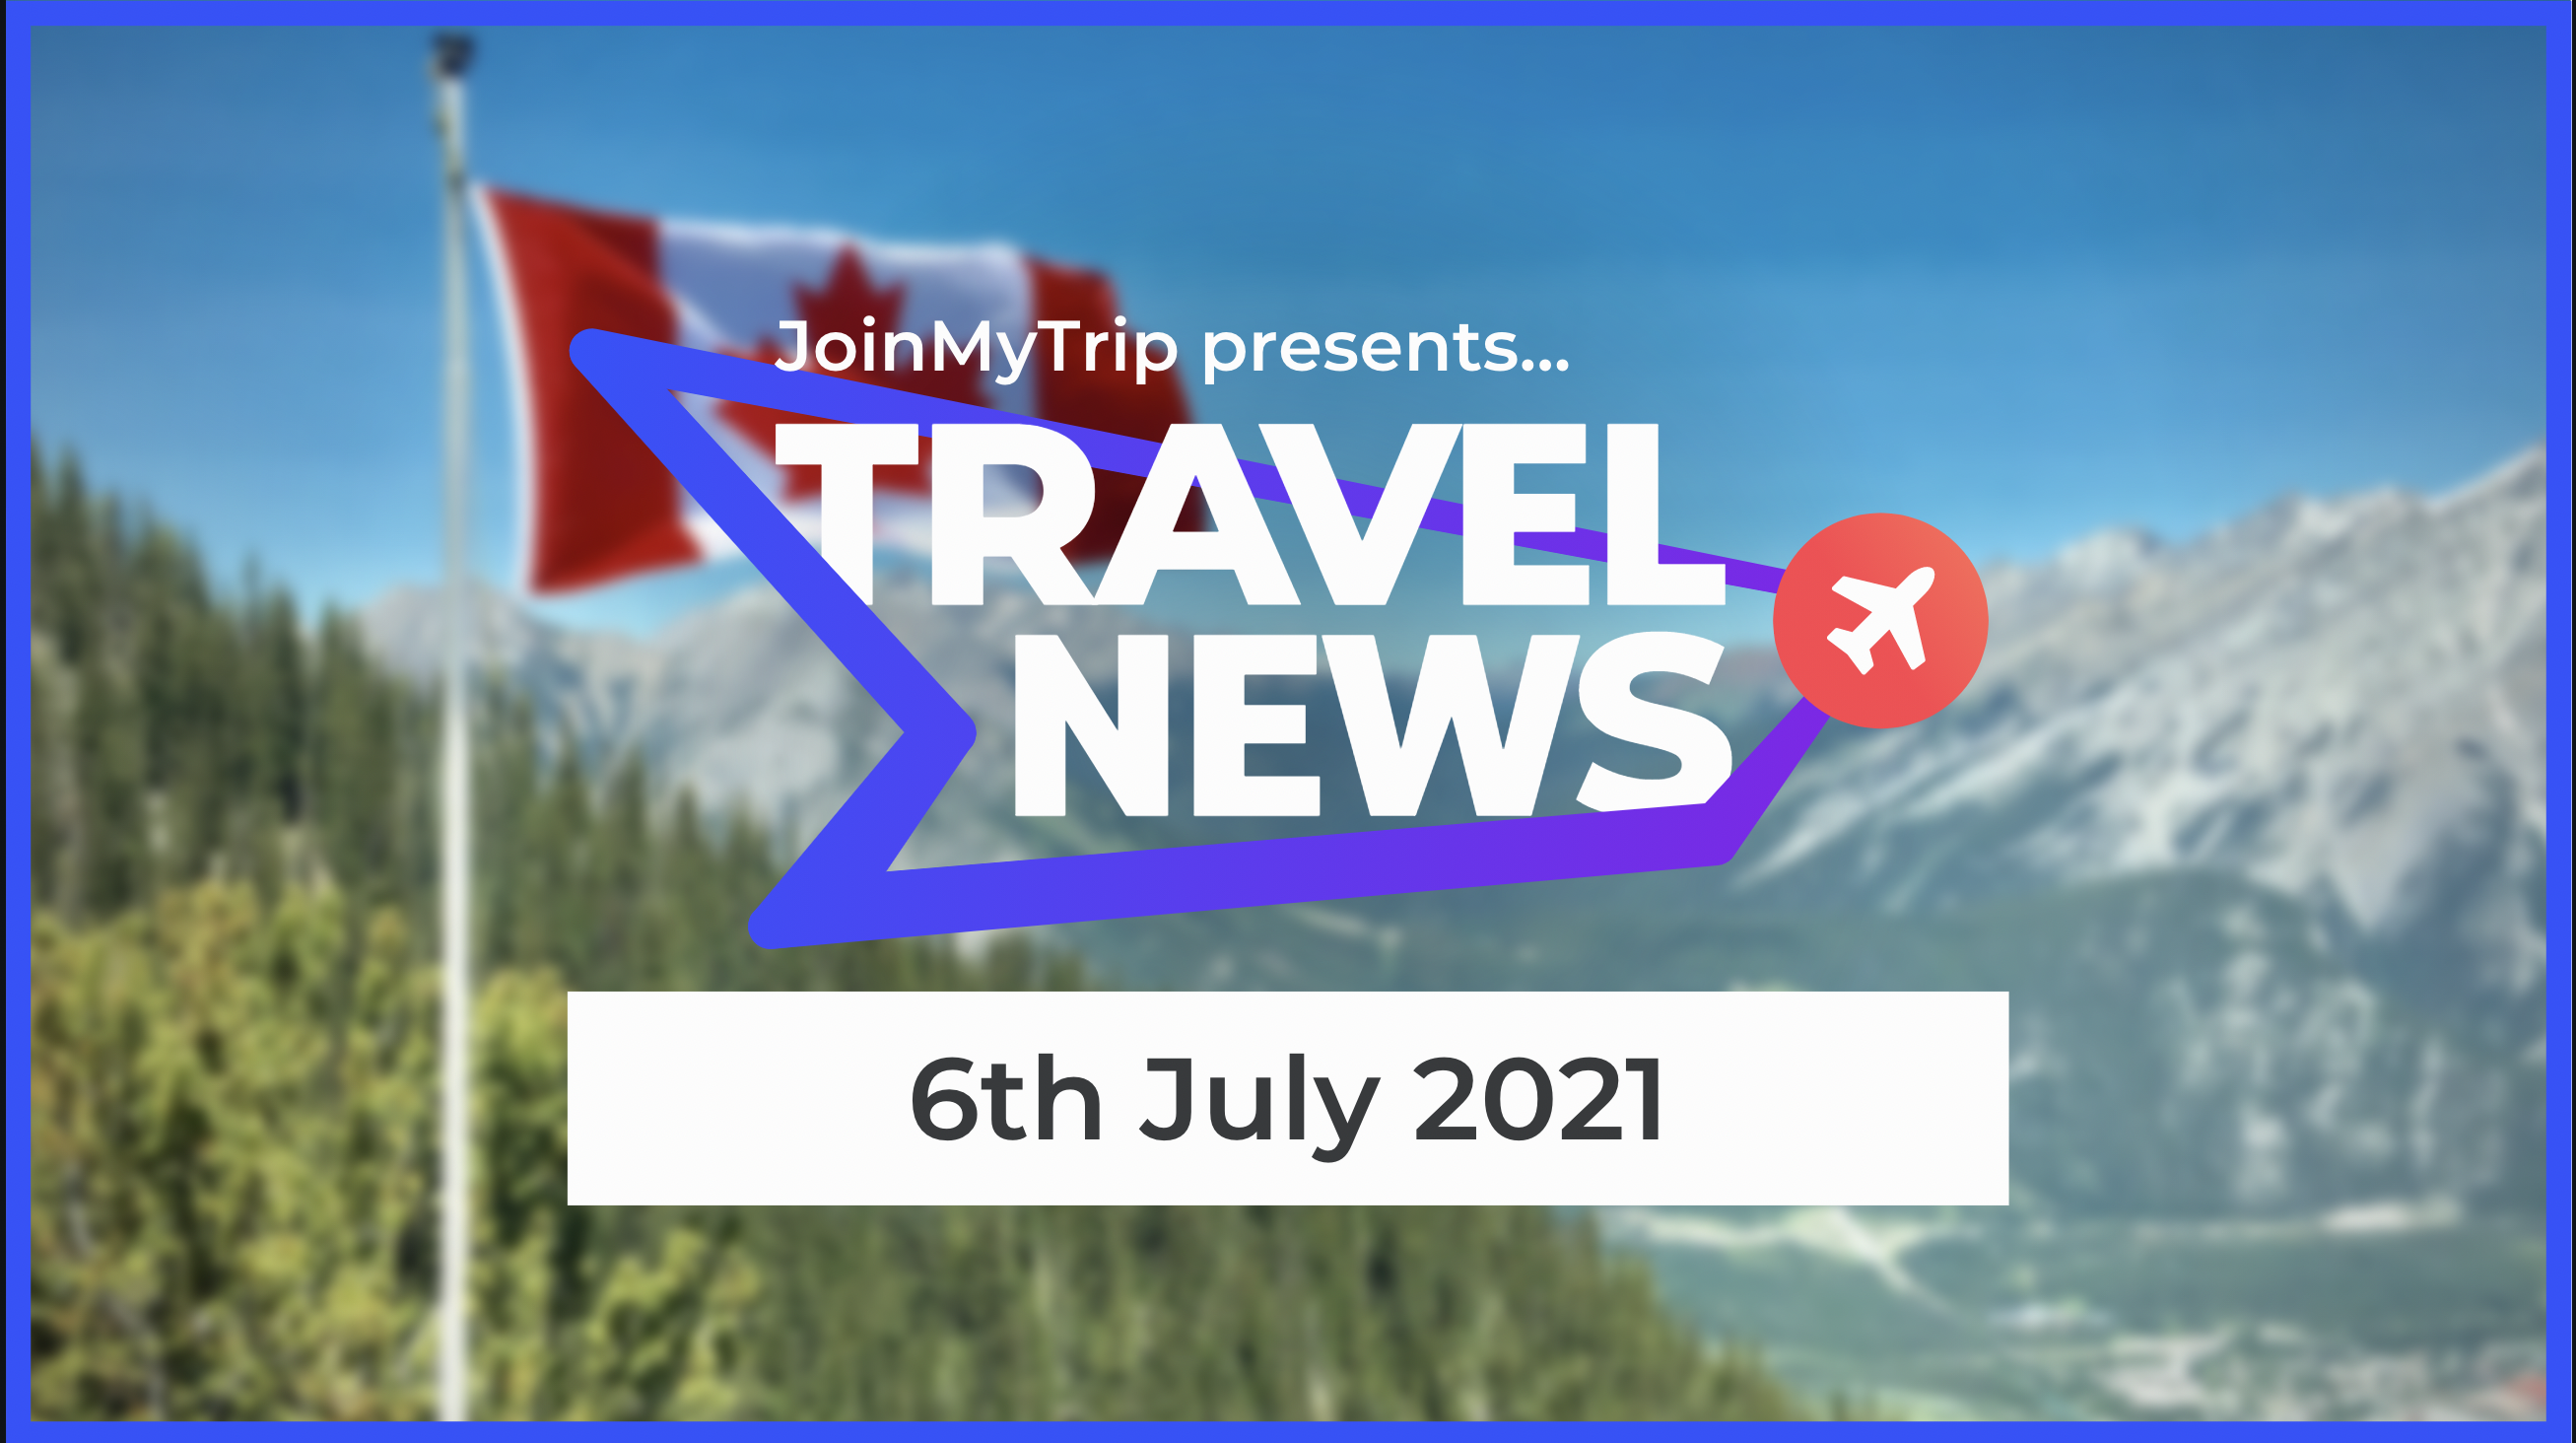 Travel News on the 6th of July 2021